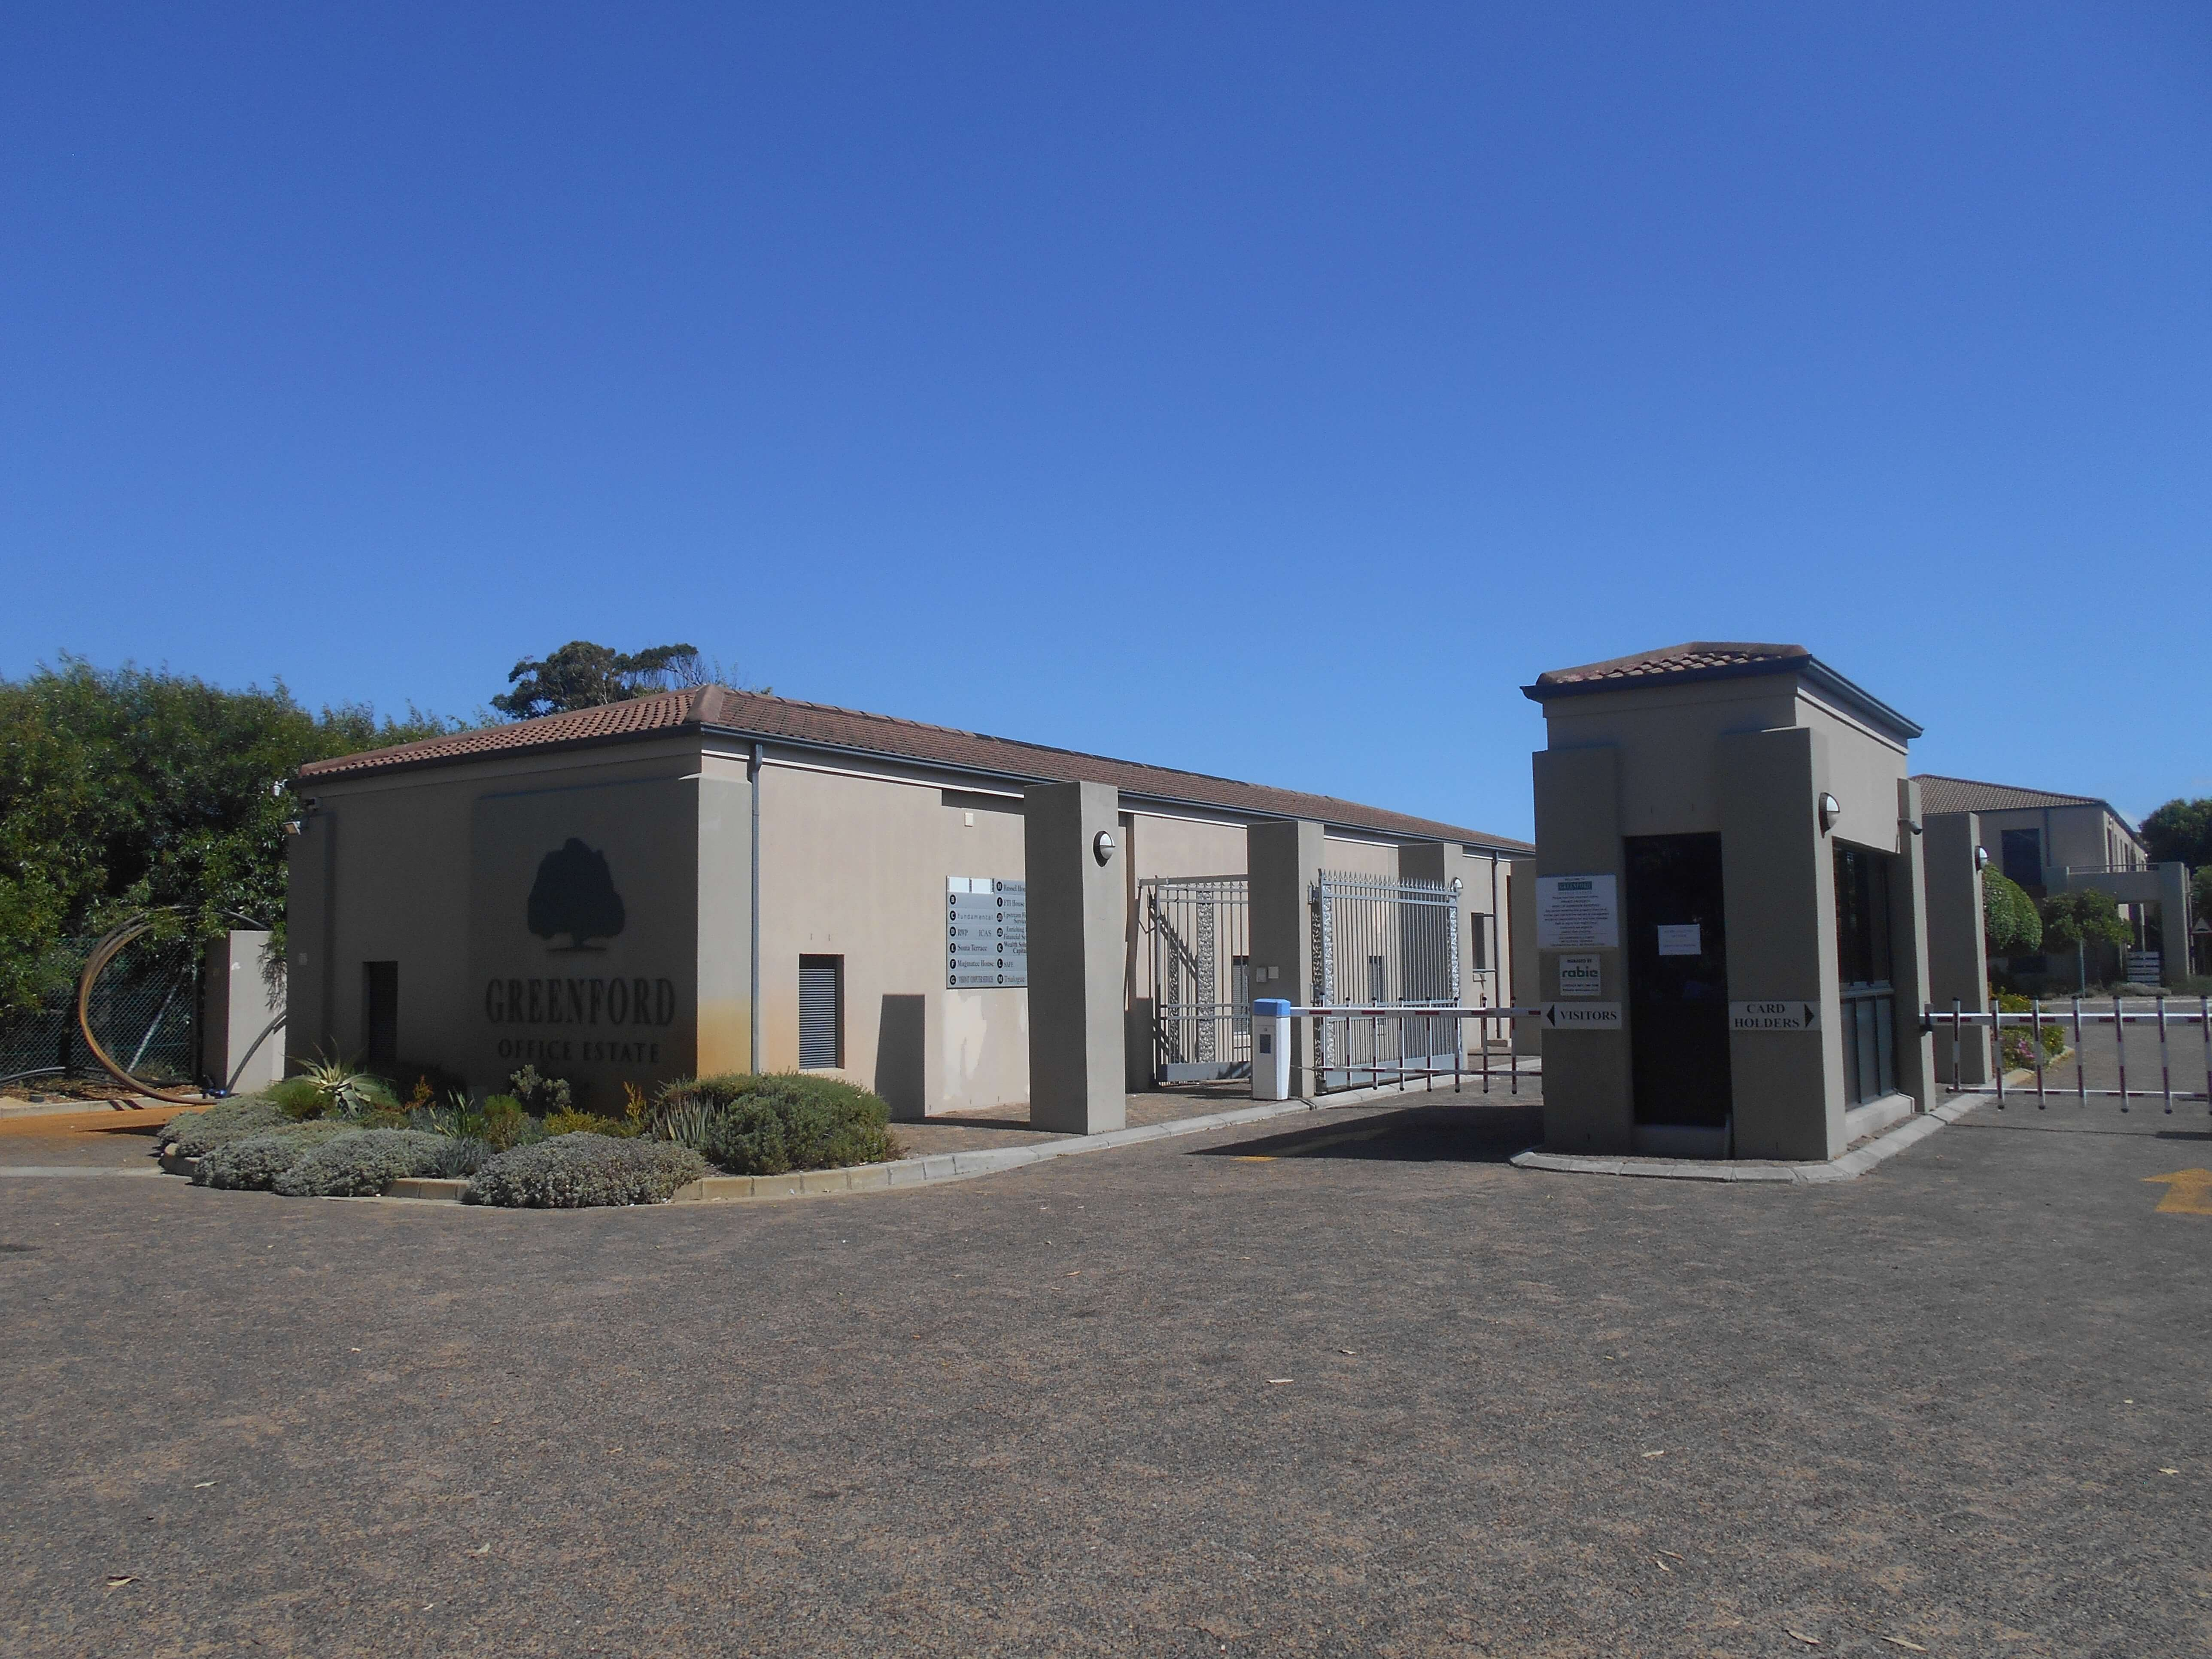 Indawo painting and waterproofing project